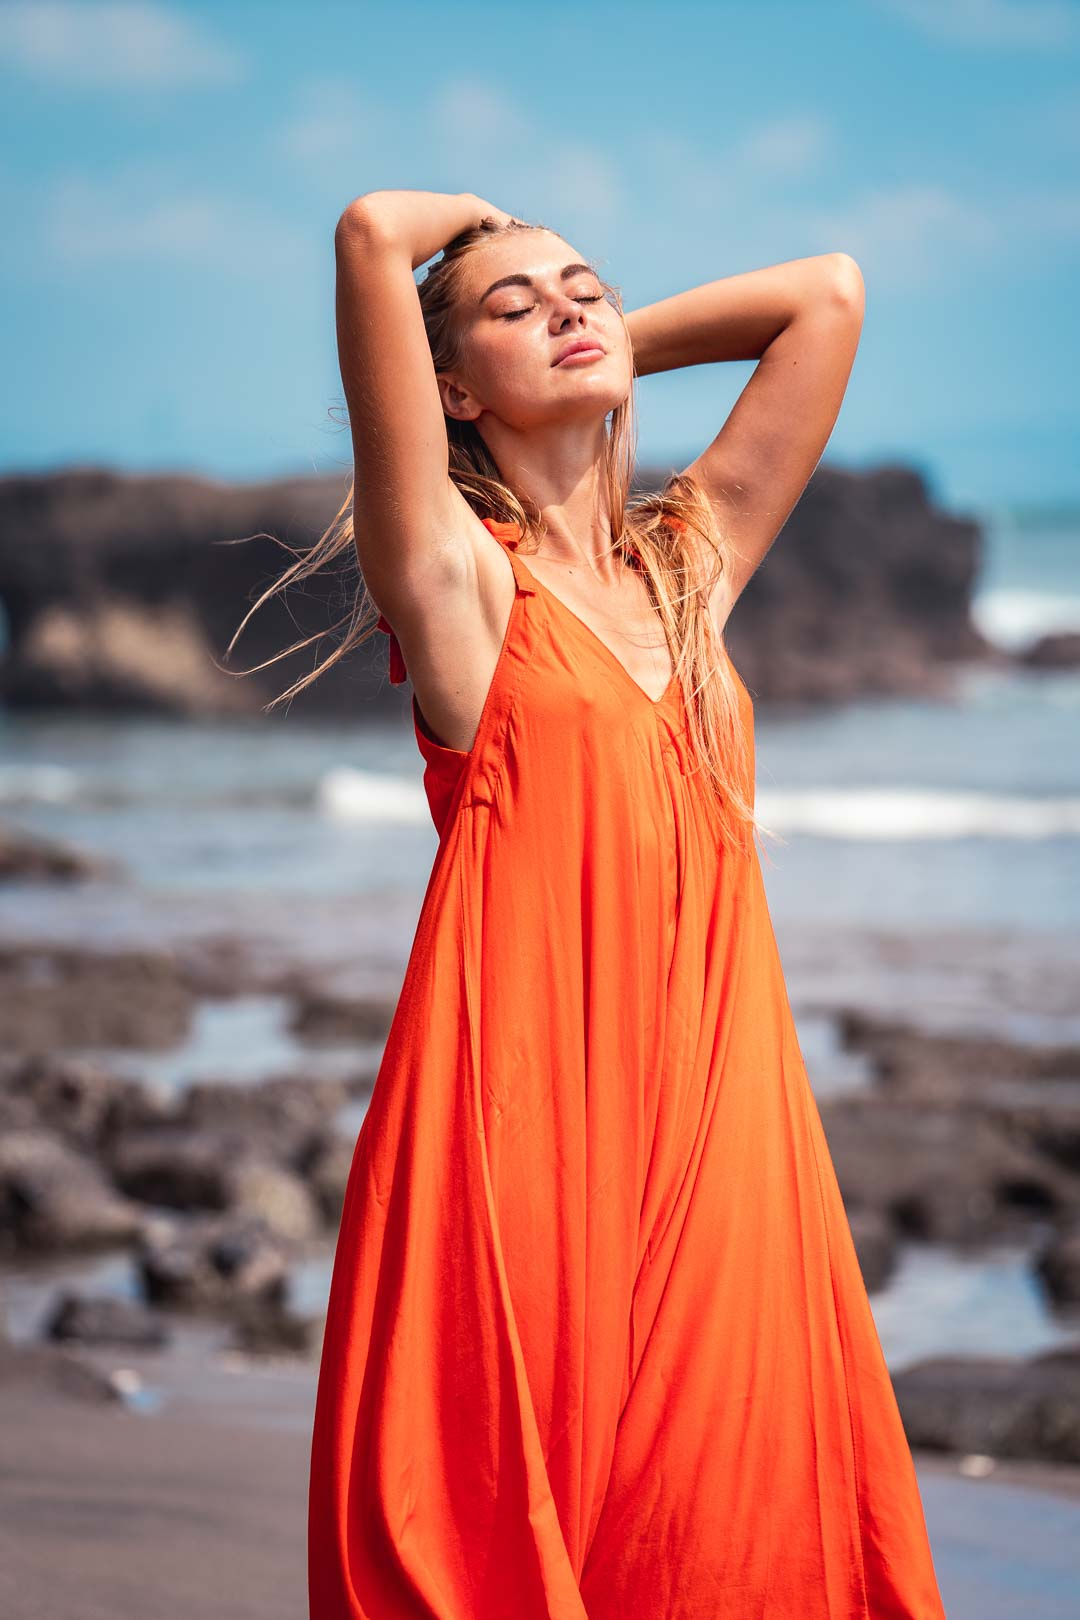 Photograph of a blonde model in an orange dress on a beach